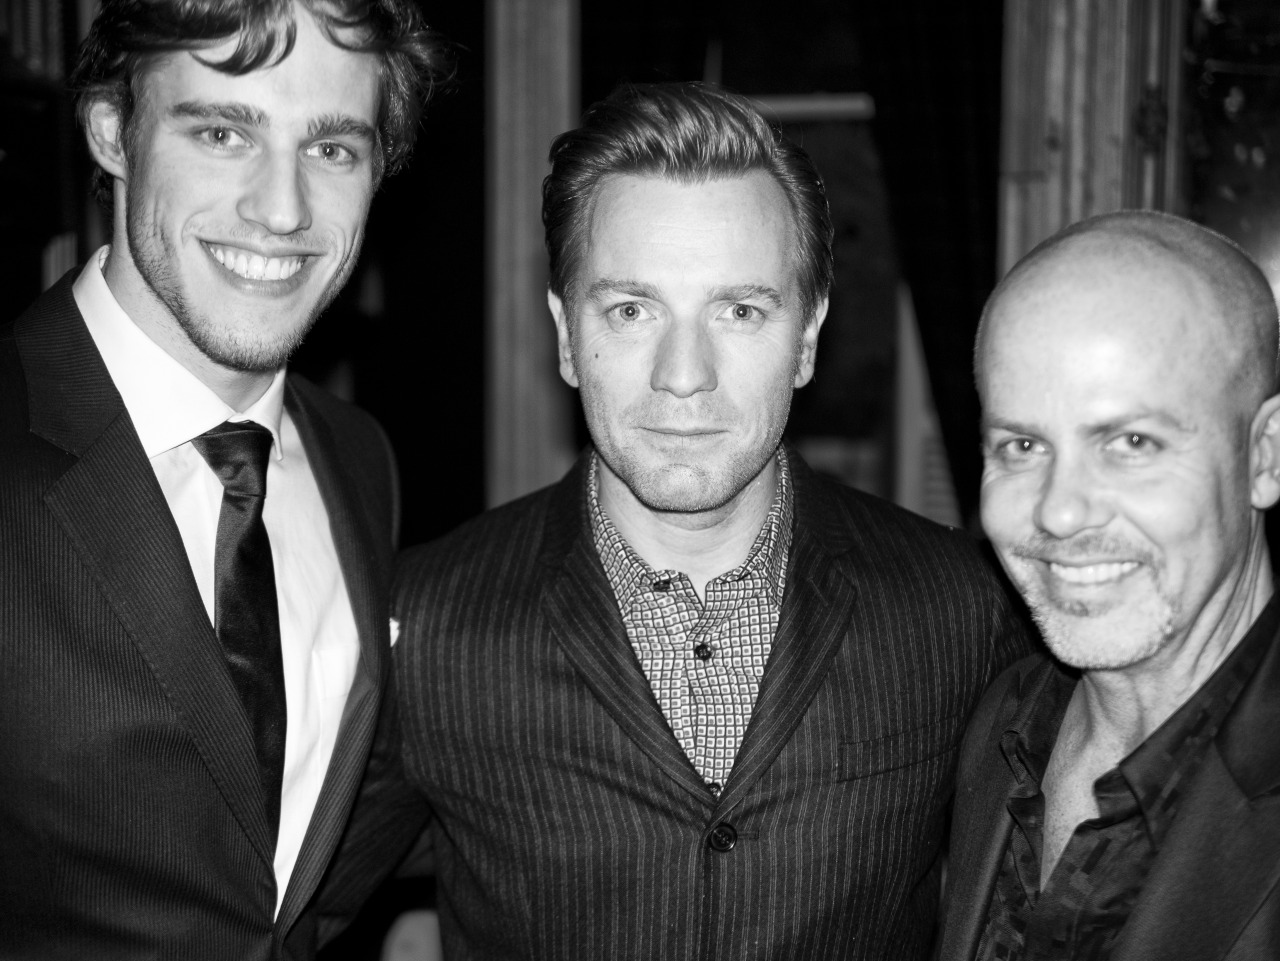 Model Jordan Stenmark with Ewan McGregor and Italo Zucchelli.